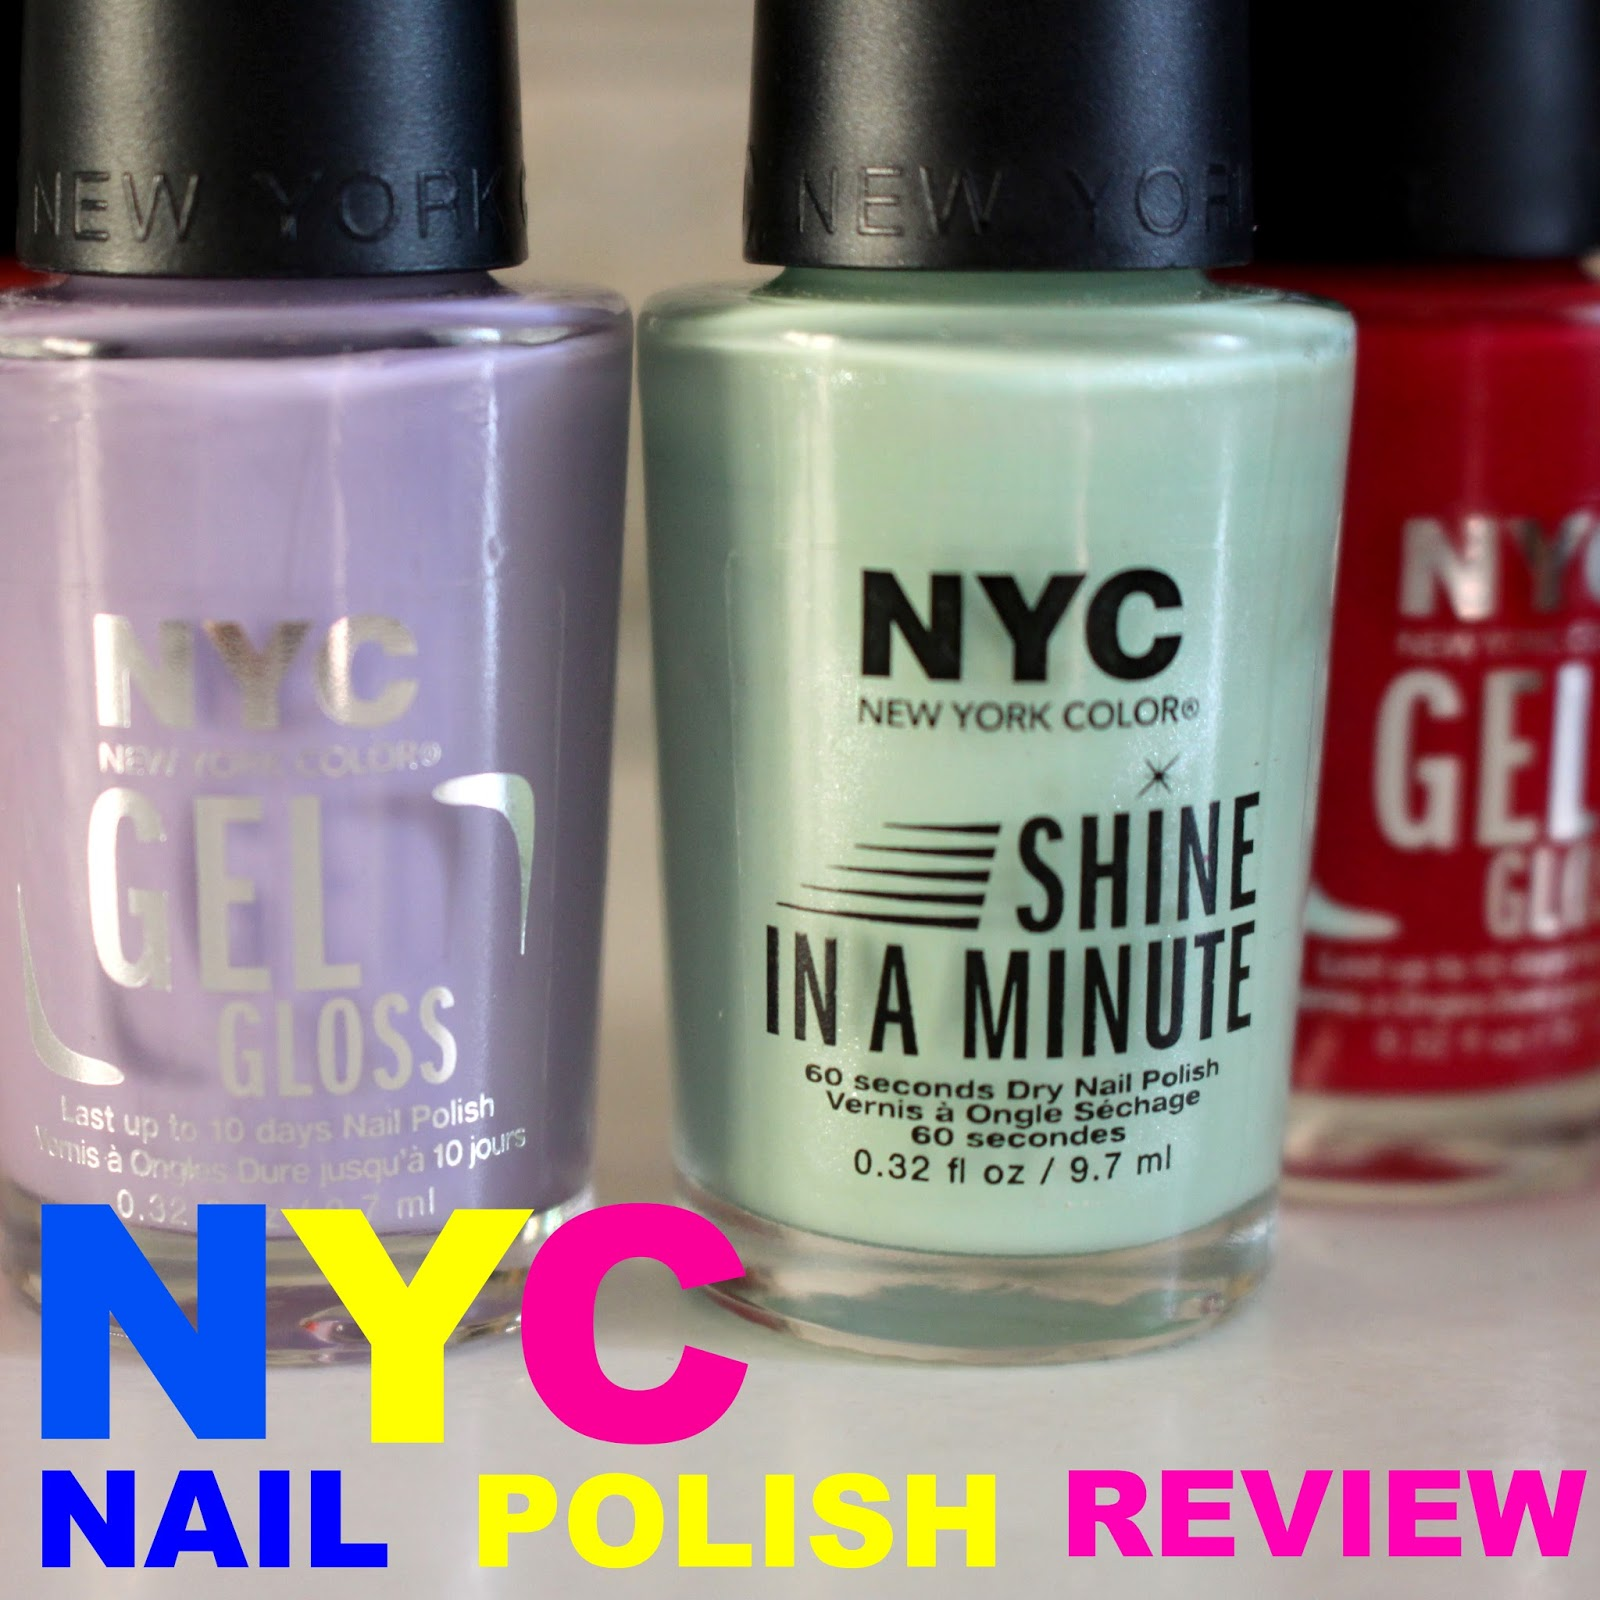 Happy thoughts & forget me nots: NYC Gel Gloss and Shine in a Minute ...